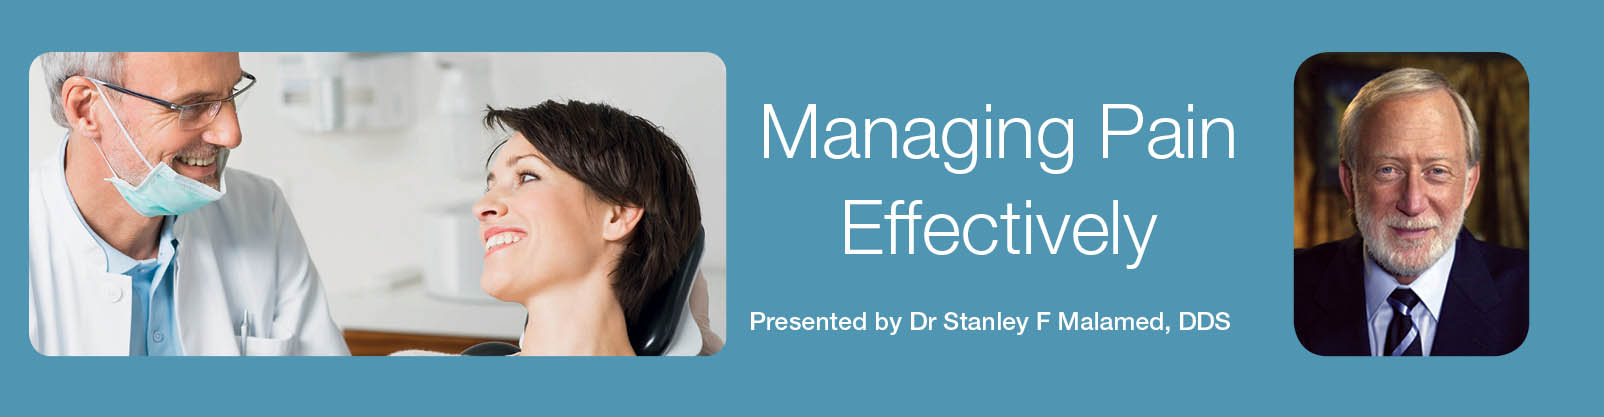 Managing Pain Effectively